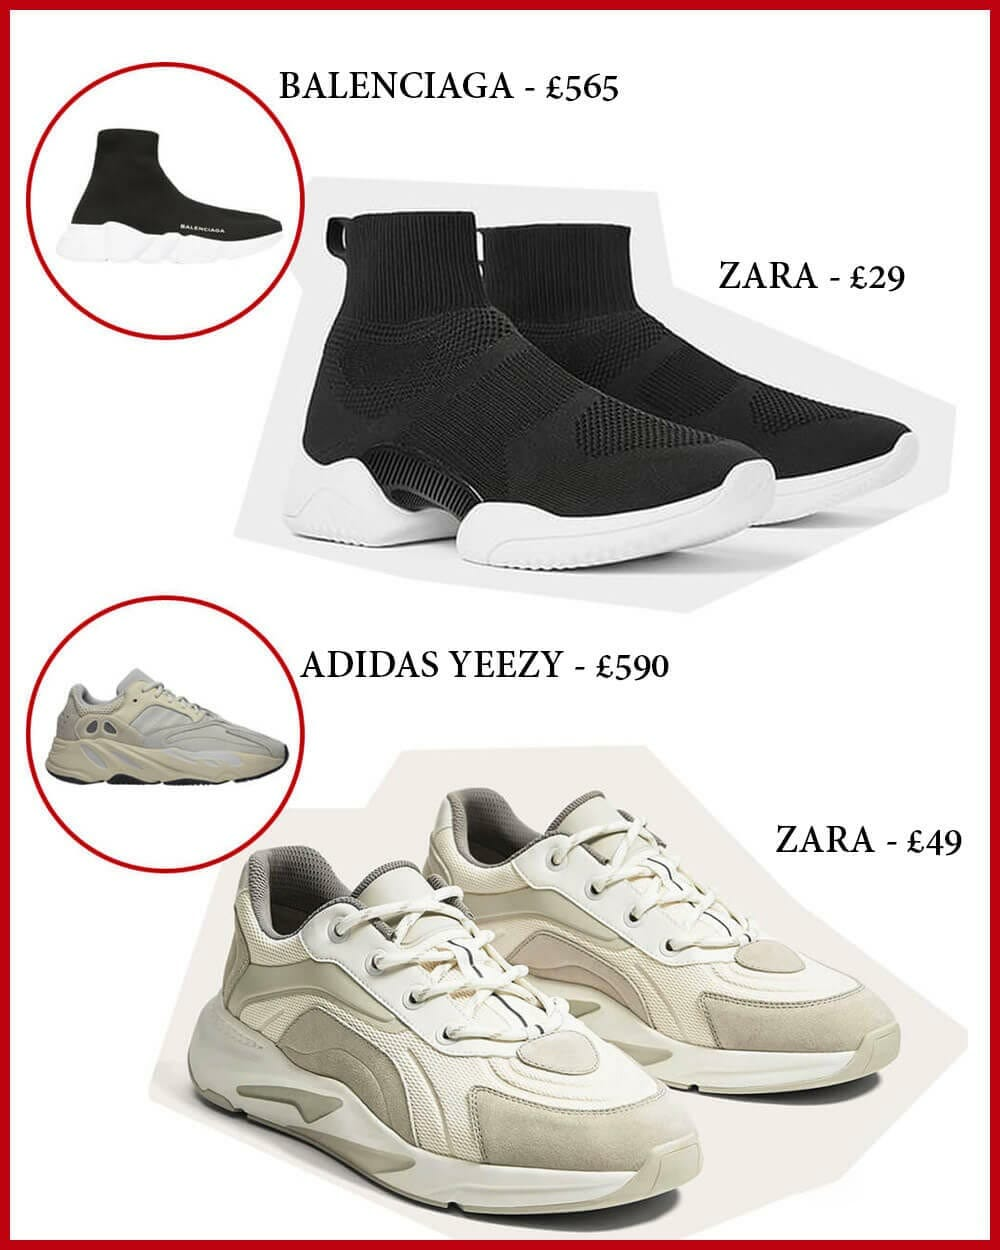 Fast Fashion ZARA copying Balenciaga and Yeezy